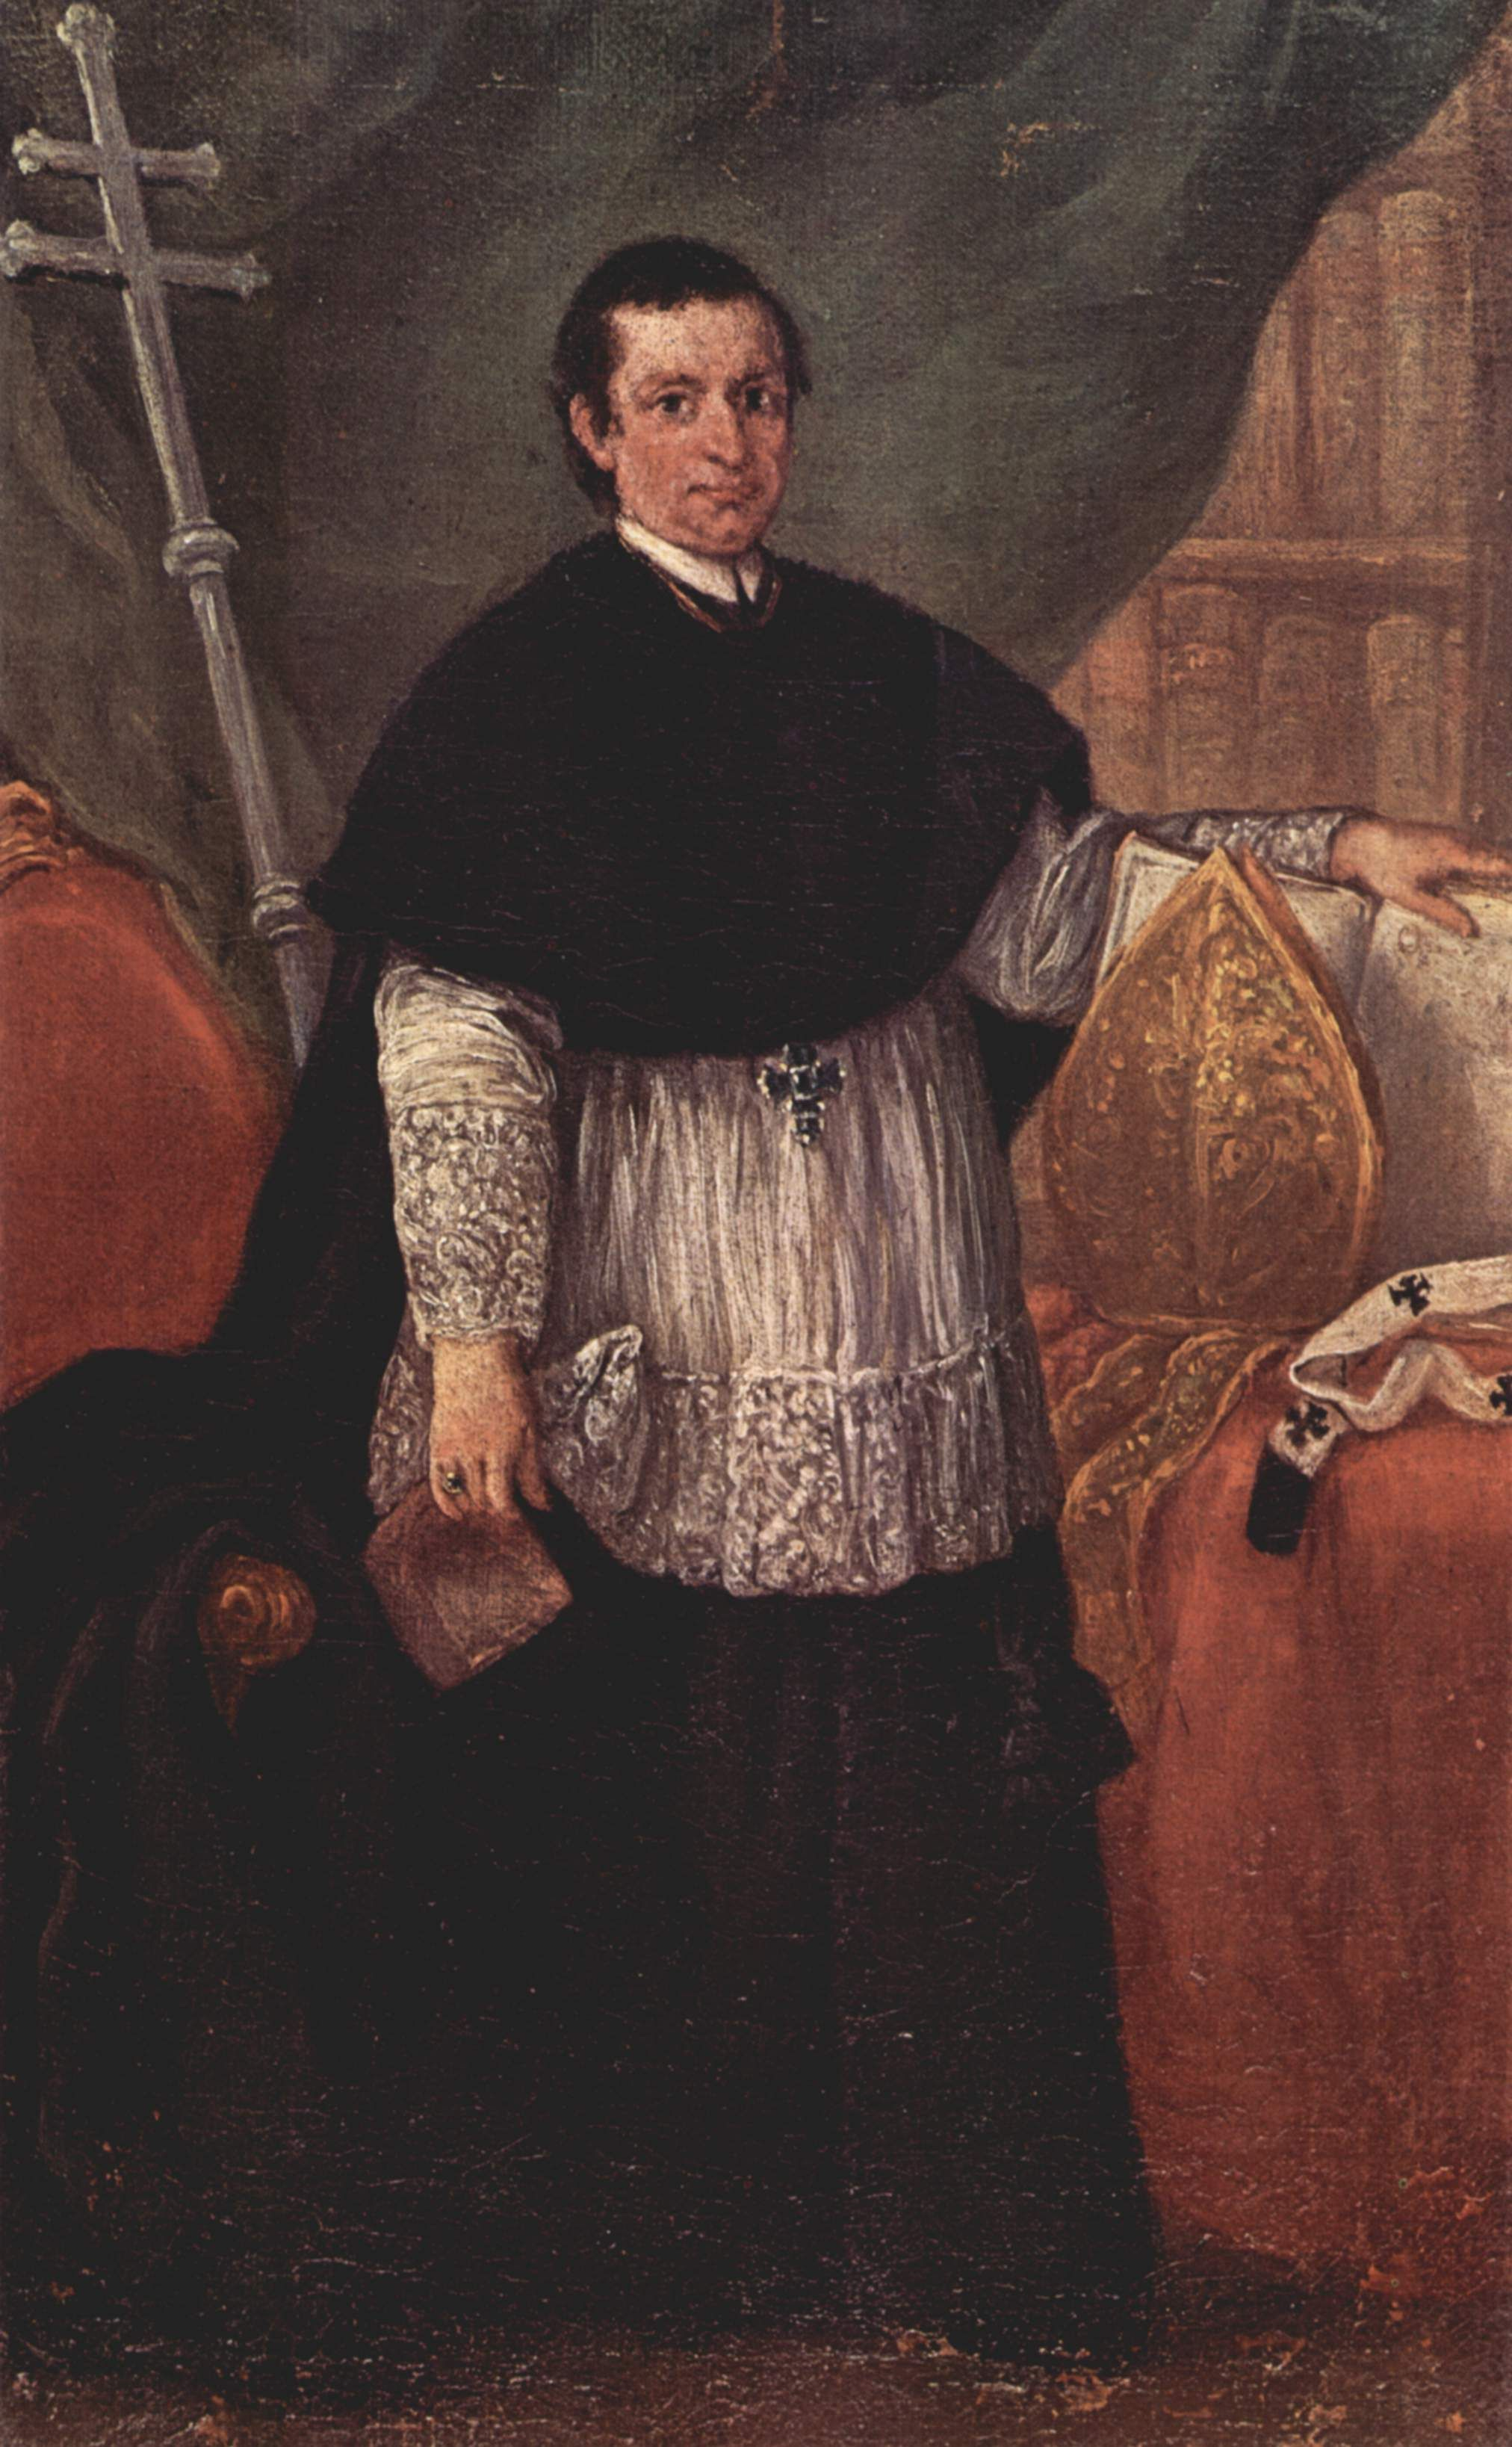 Portrait of Bishop Benedetto Ganassoni - Artist: Pietro Longhi  Completion Date: 1774  Style: Rococo  Genre: portrait  Technique: oil  Material: canvas  Dimensions: 26 x 42 cm  Gallery: Ca' Rezzonico, Museo del Settecento, Venice  Tags: male-portraits, priests-and-sacraments